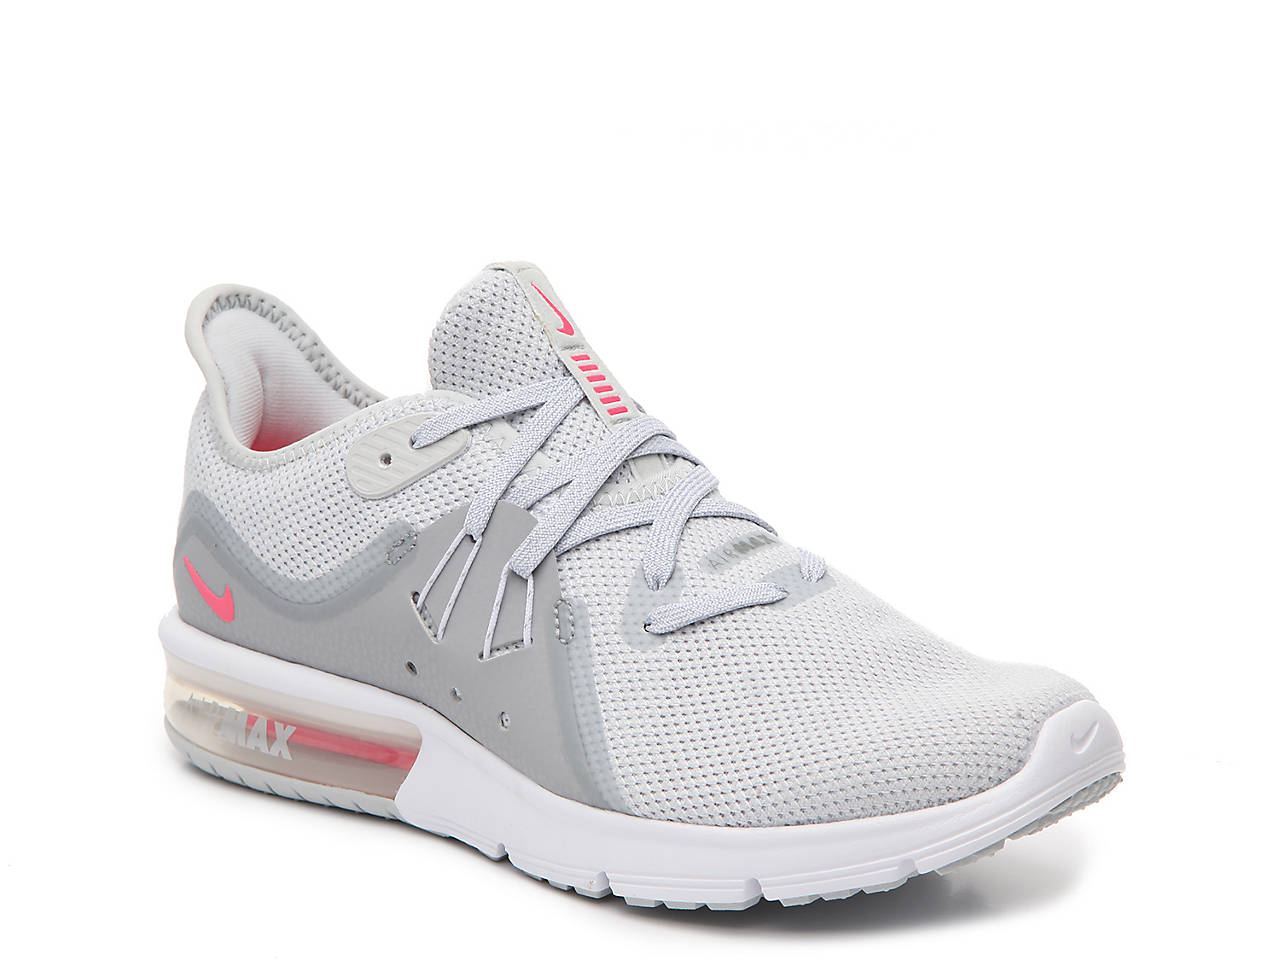 f7d3d41f7ca Nike Air Max Sequent 3 Lightweight Running Shoe - Women s Women s ...